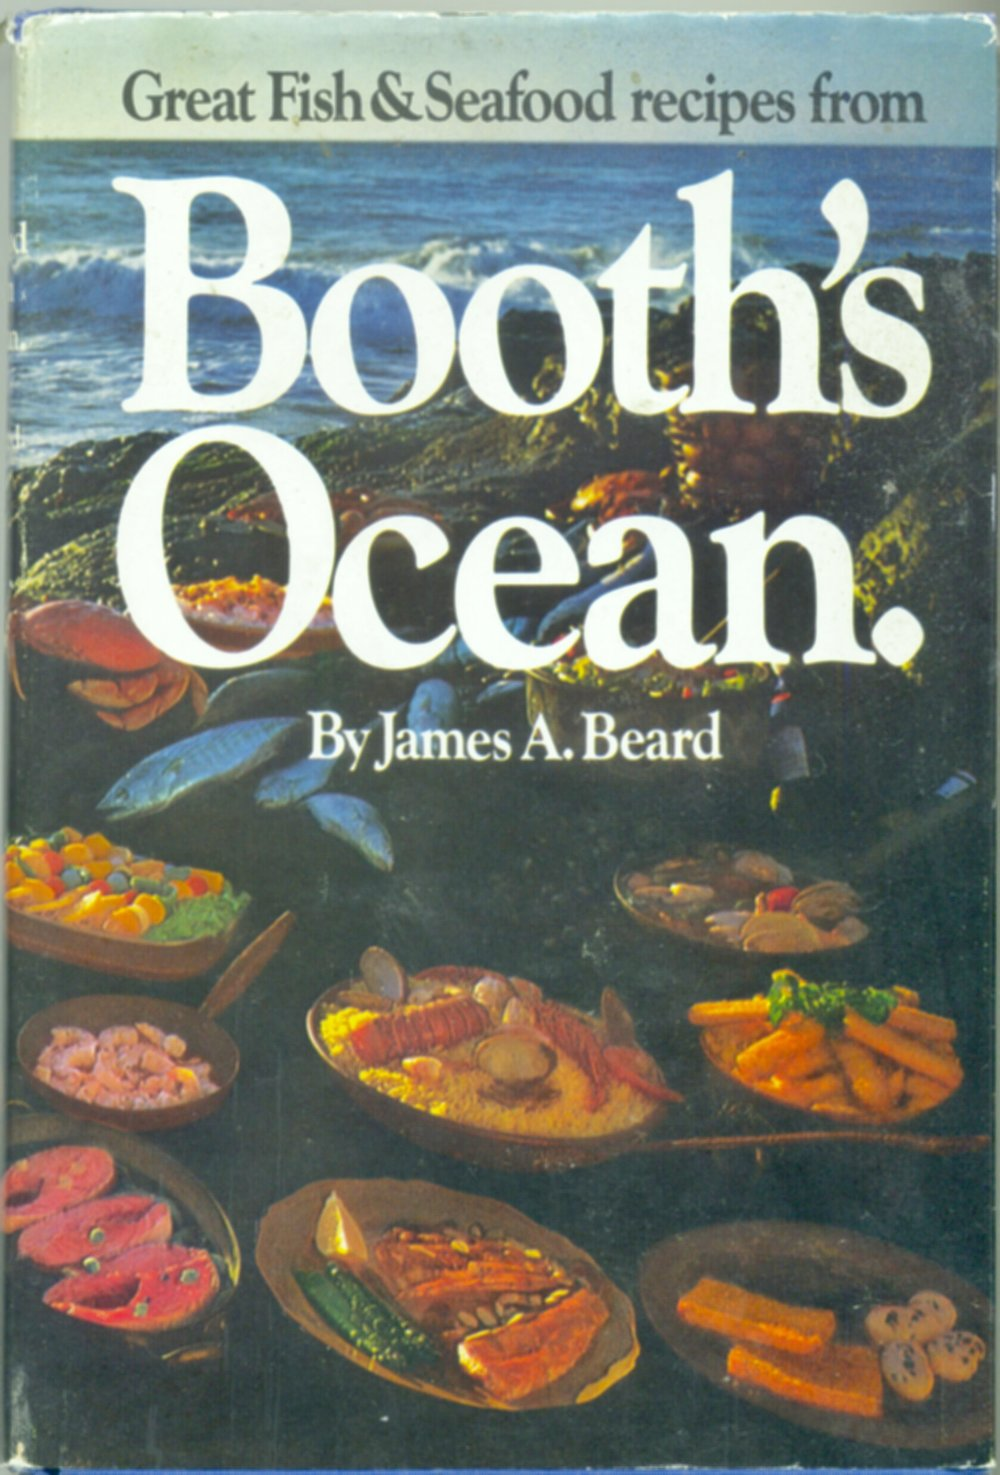 Booth's Ocean is a promotional reprint of James Beard's 1954 Fish Cookery ... 2nd printing 1971 ... Booth was a frozen seafood company